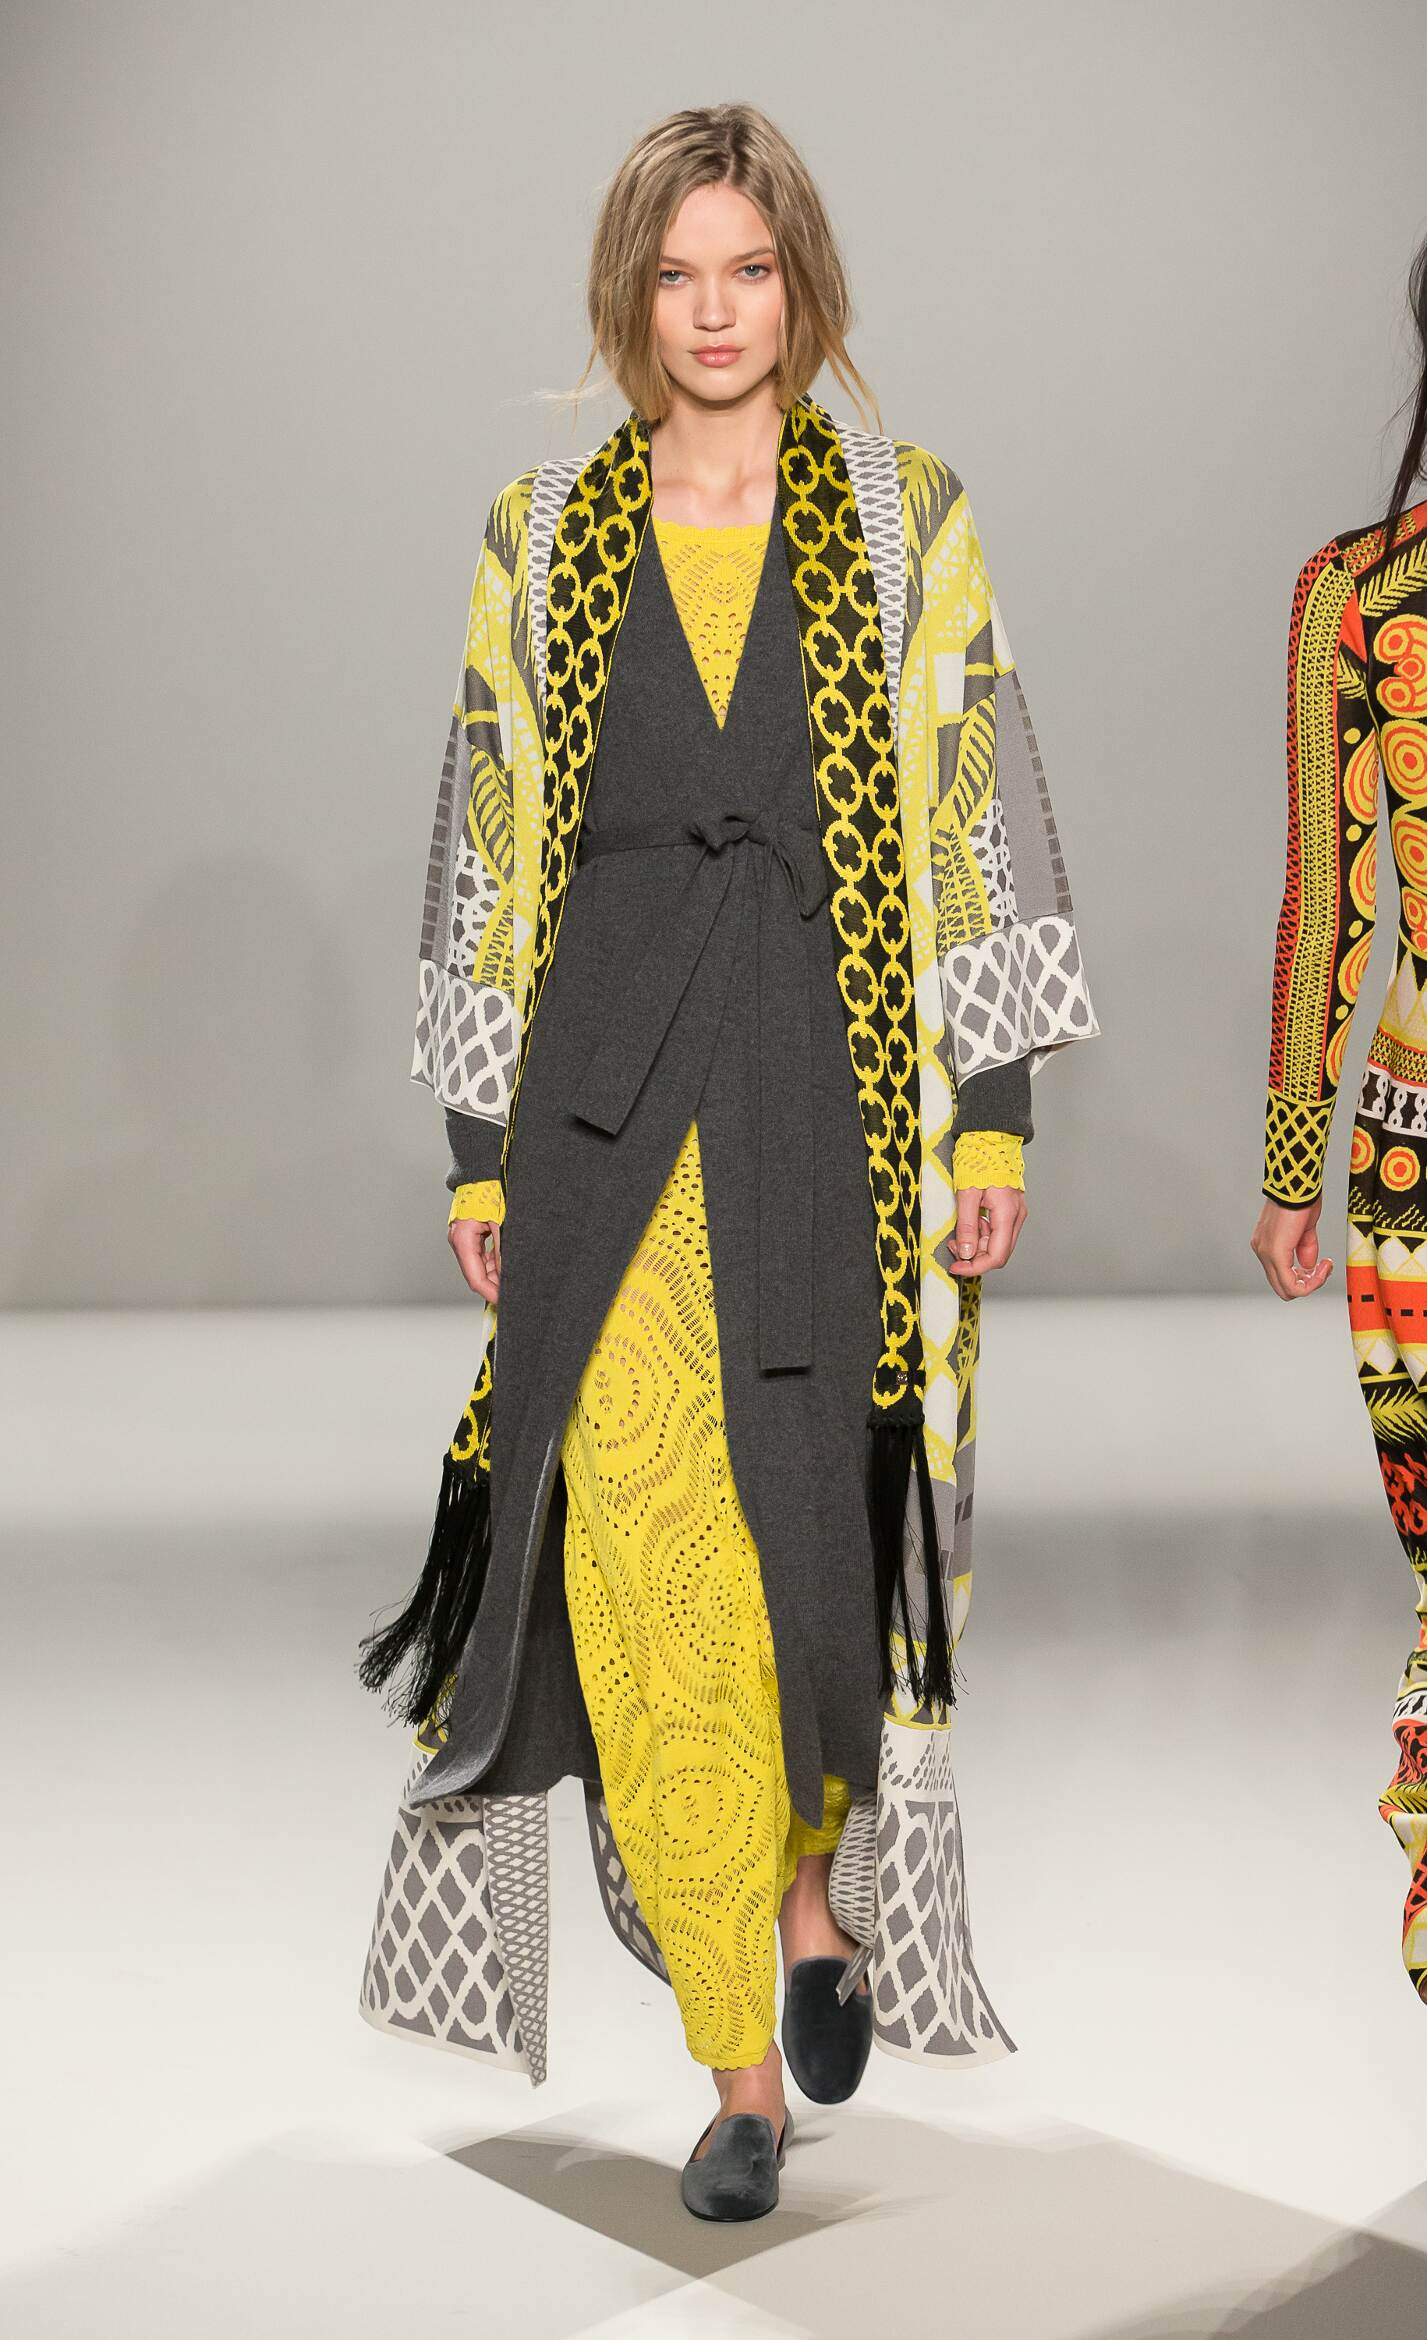 Temperley London Fall Winter 2015 16 Women's Collection London Fashion Week Fashion Show